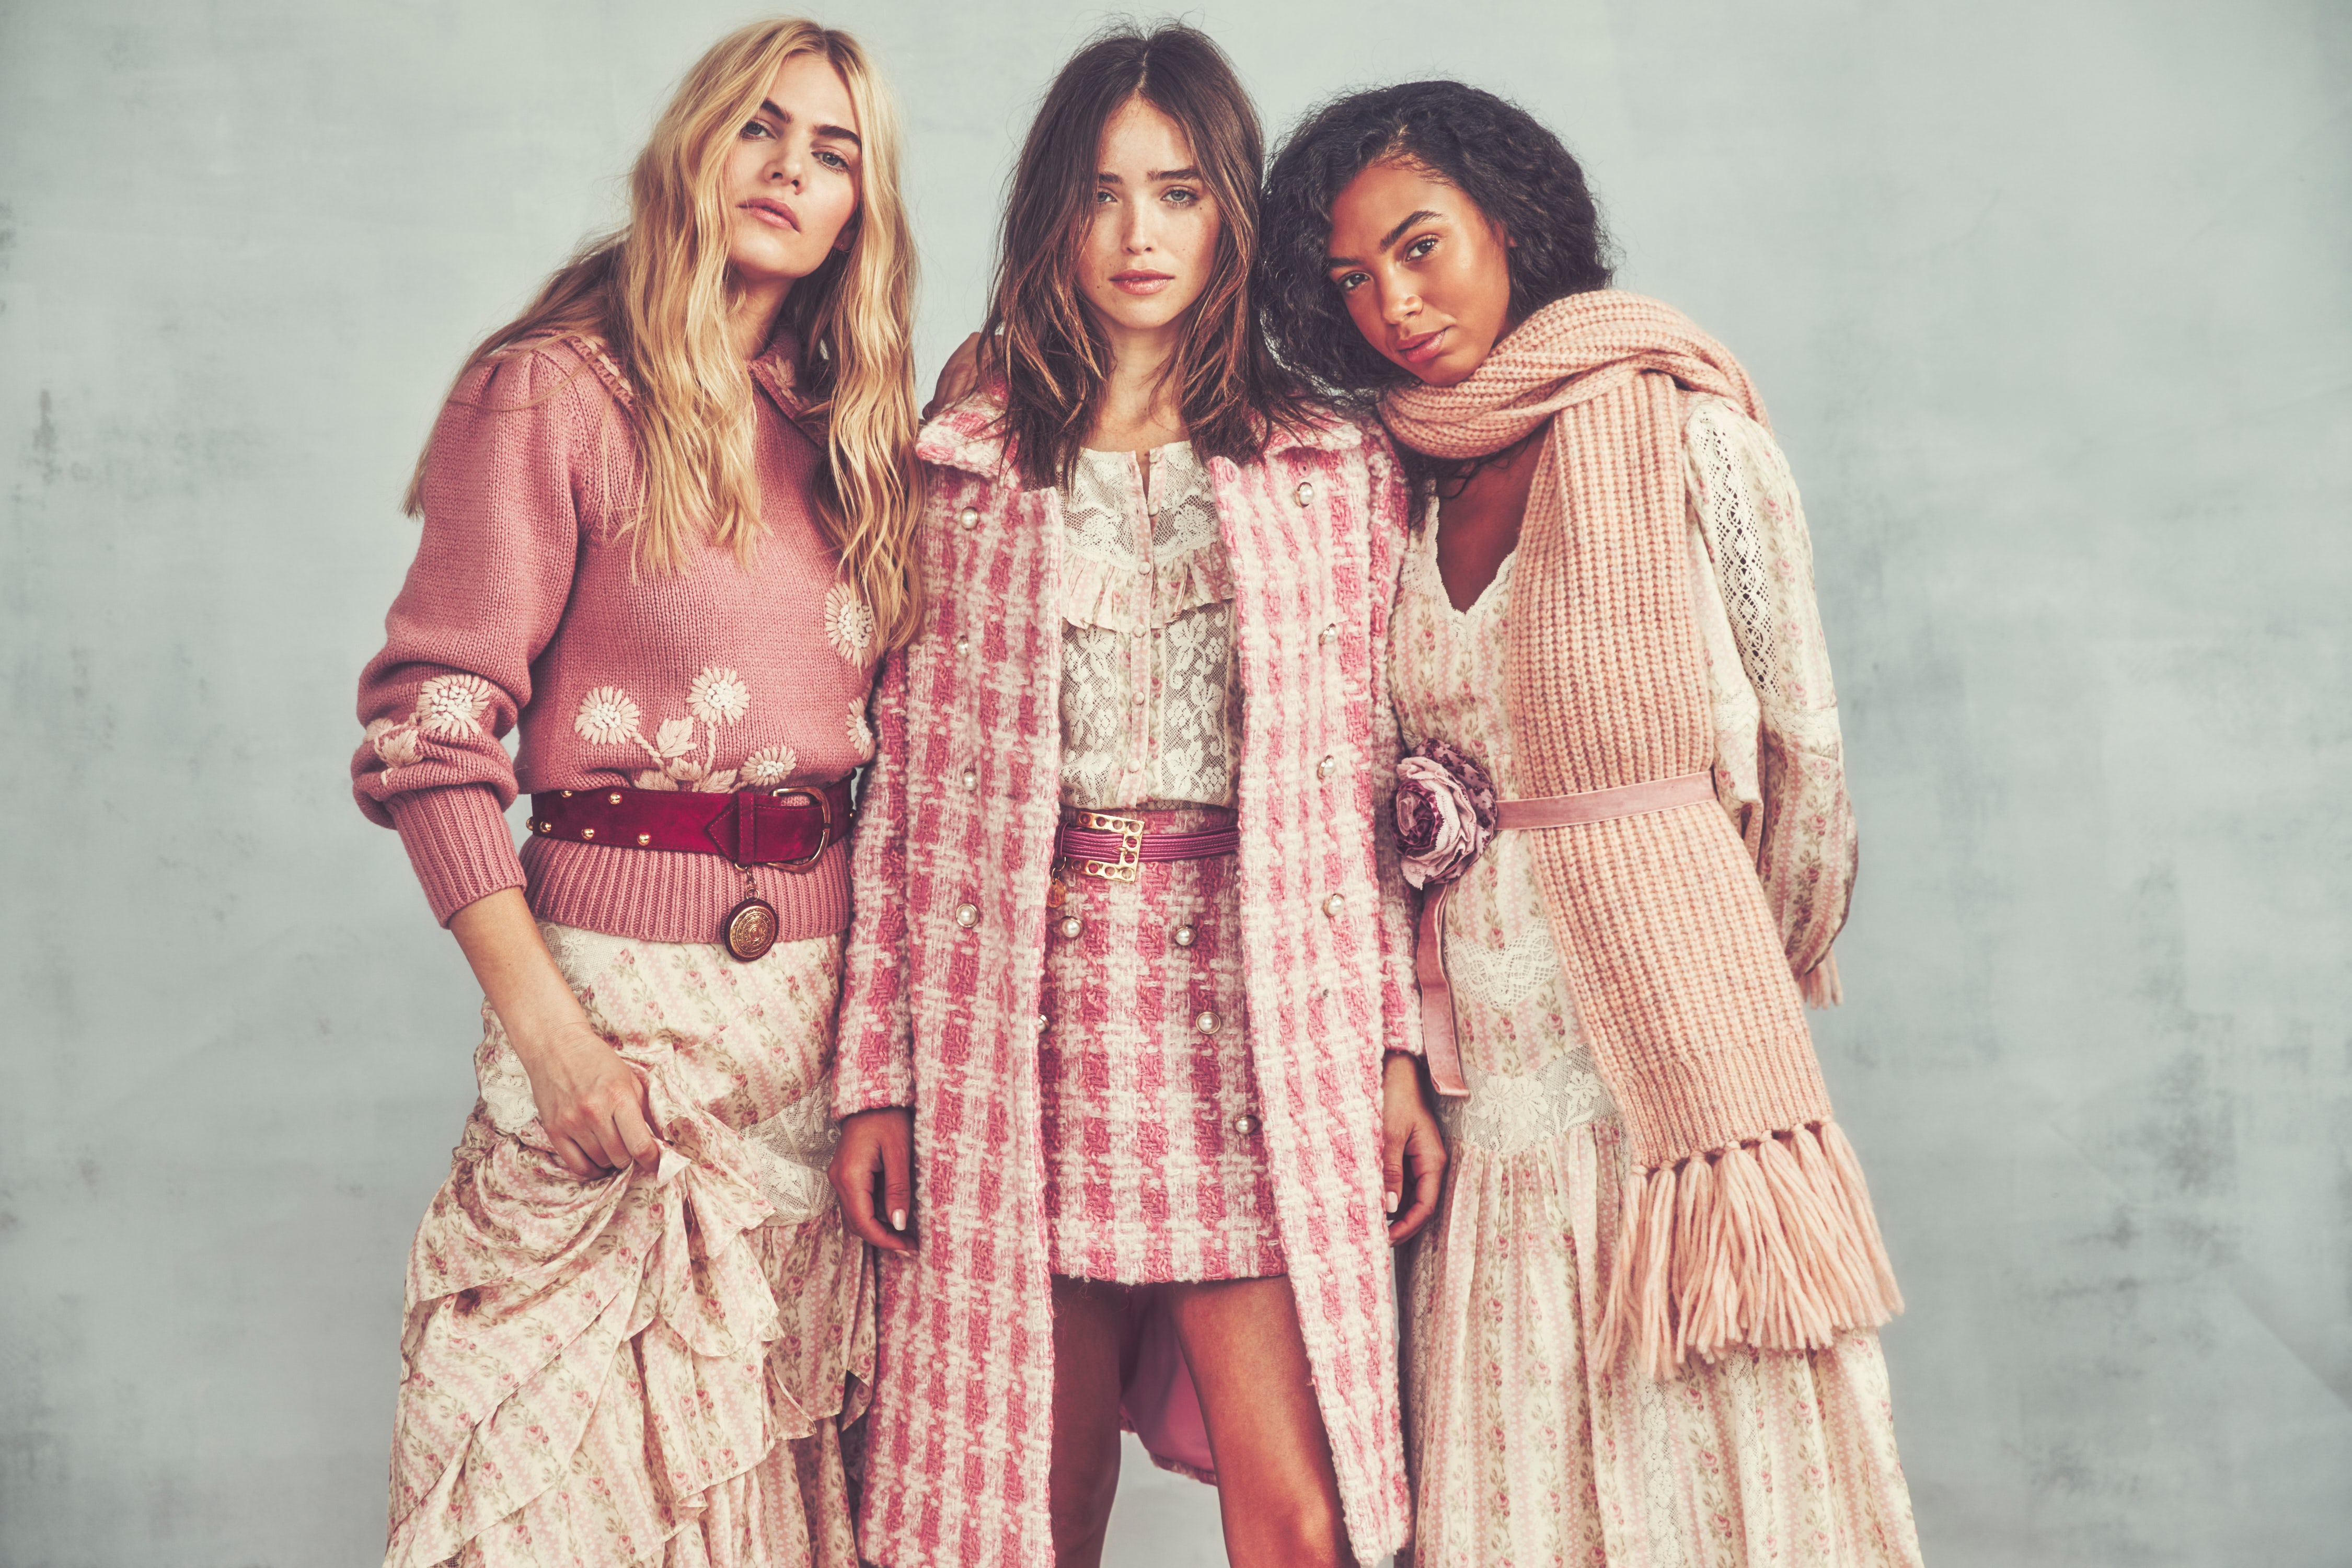 LoveShackFancy\'s clothes can sell for $800, but its best-selling items hit a lower price point. LoveShackFancy